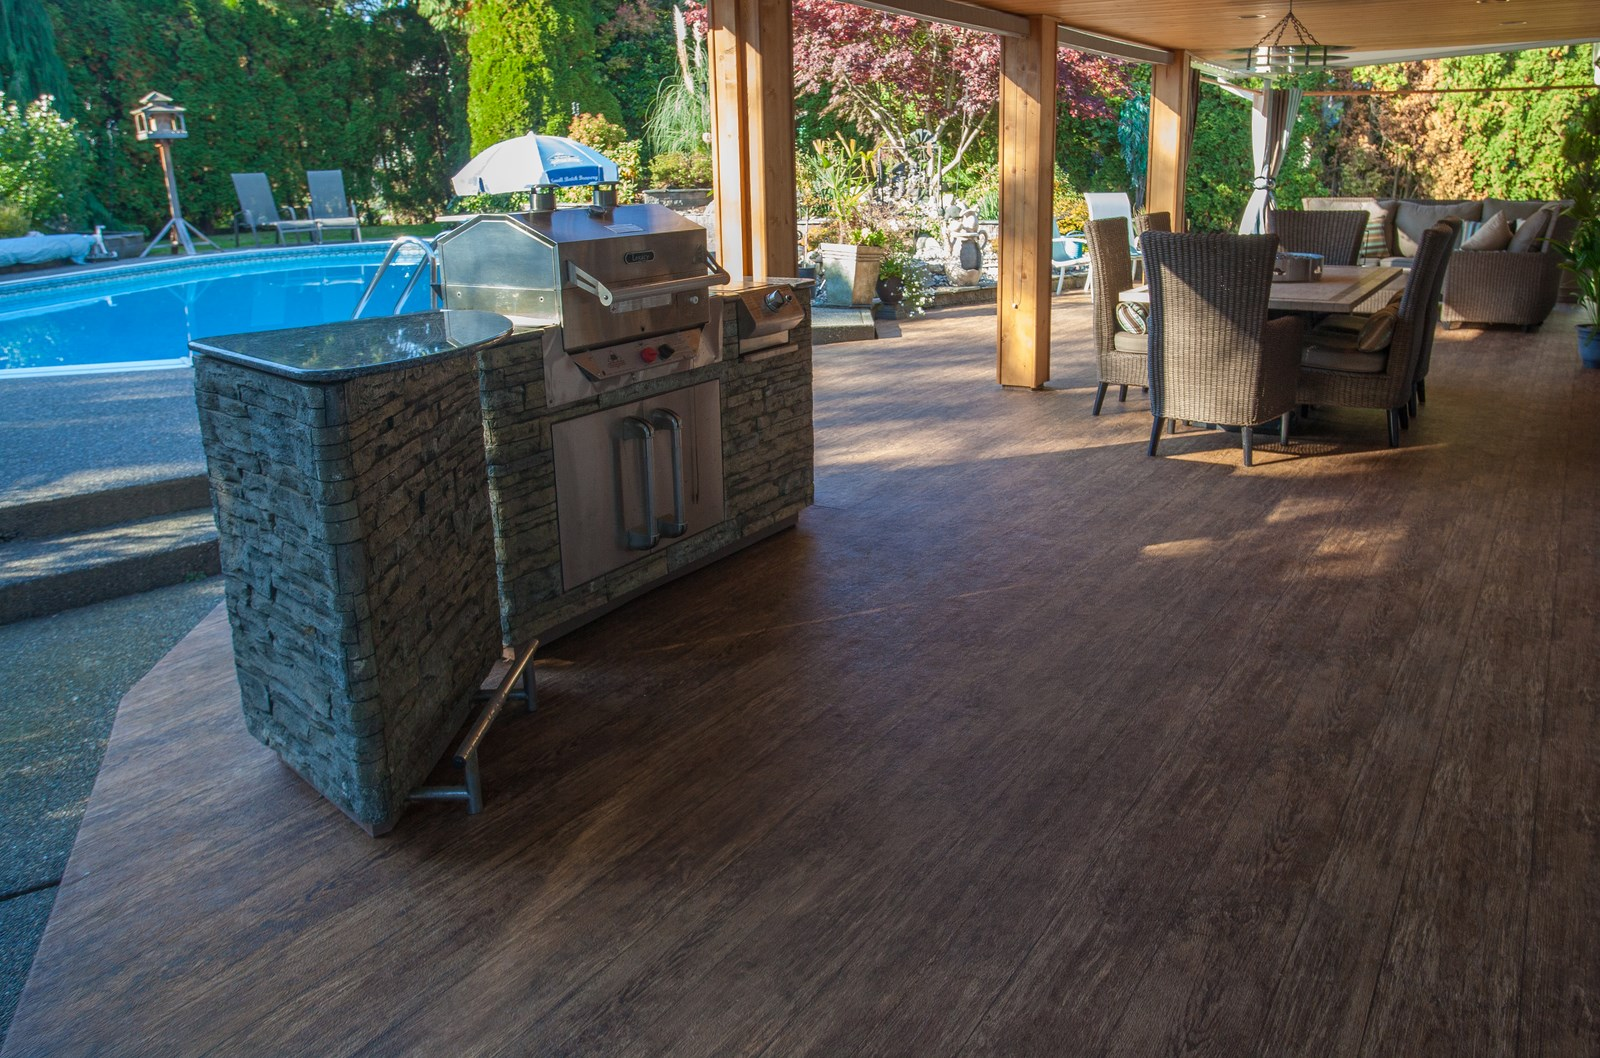 Now That The Weather Is Warming, You Might Want To Think About How Much  Youu0027re Going To Use Your Vinyl Deck Or Patio This Year. One Major Trend In  Outdoor ...